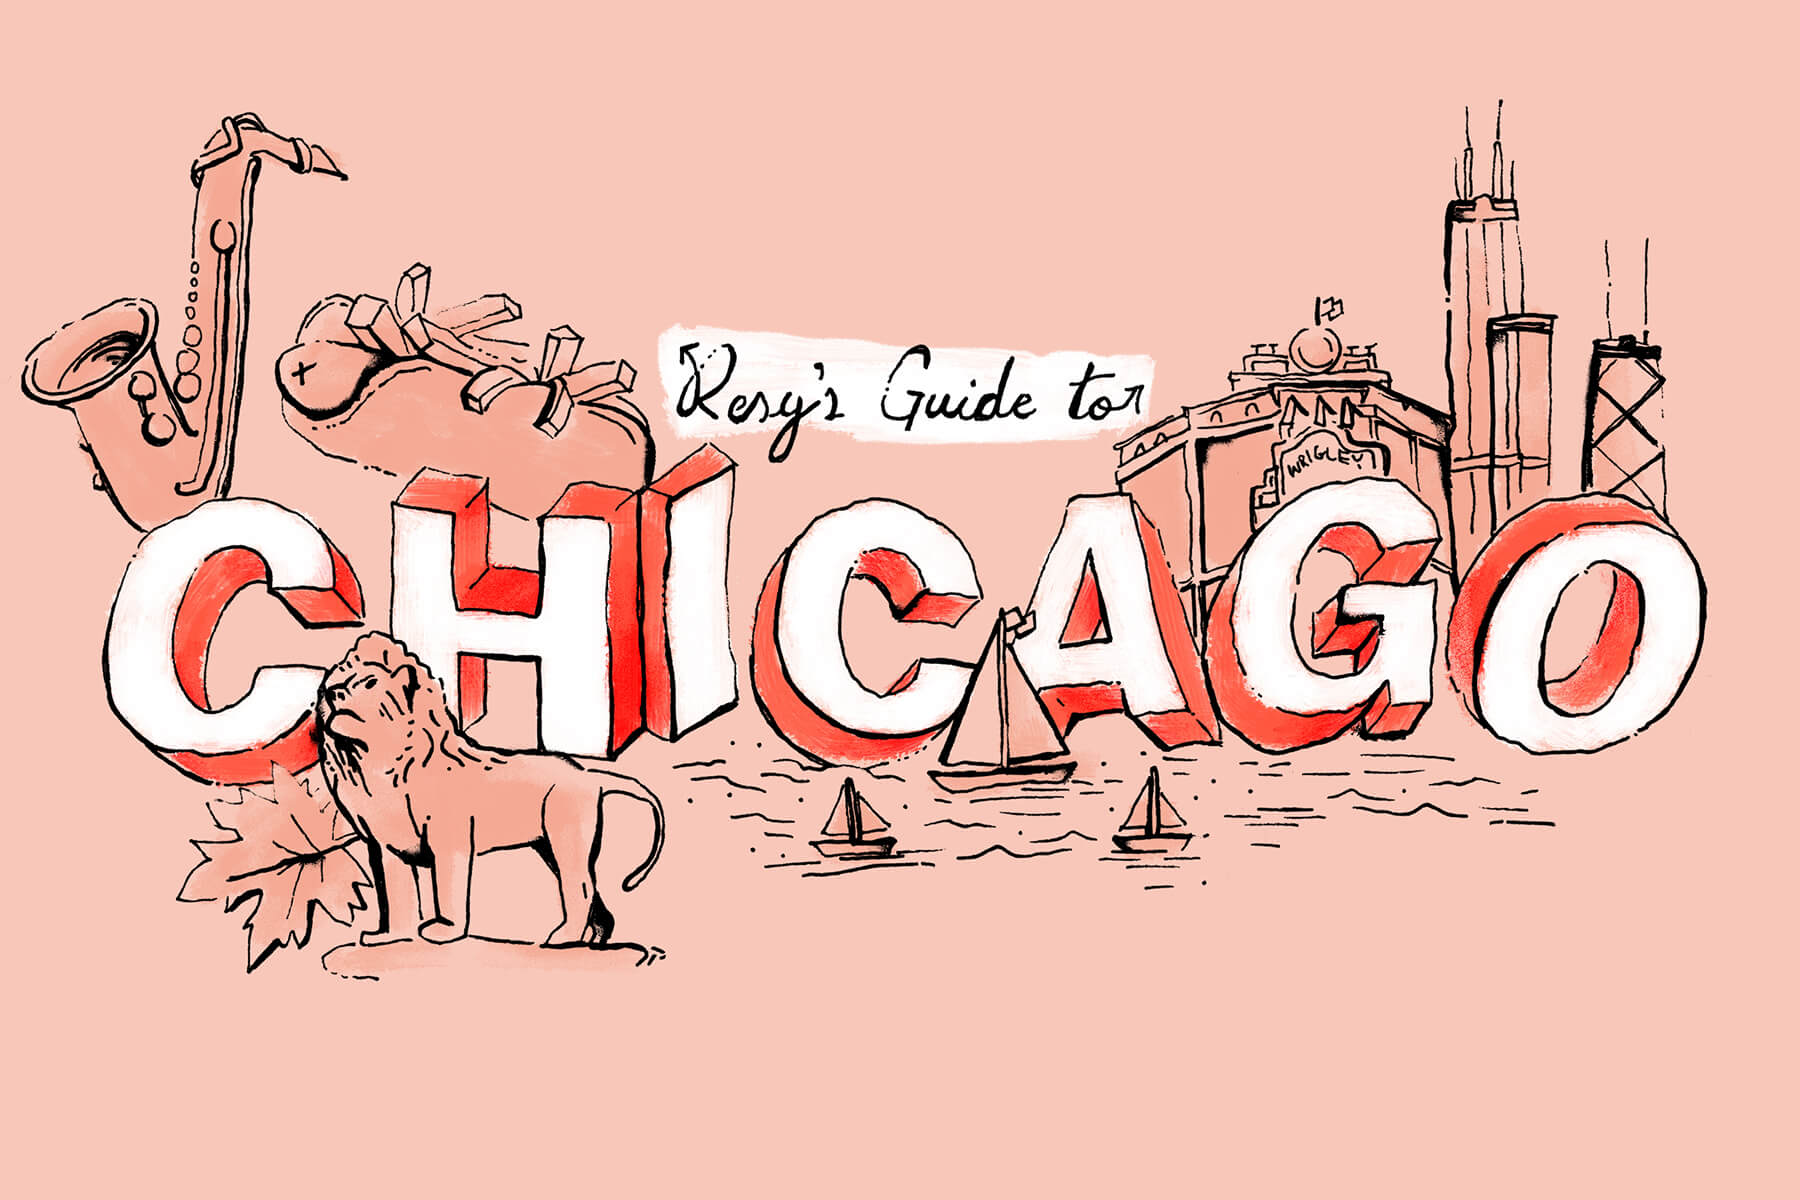 3D letters spell Chicago for this City Guide illustration, surrounded by sailboats hot dogs wrigley field and sears tower in pink and red